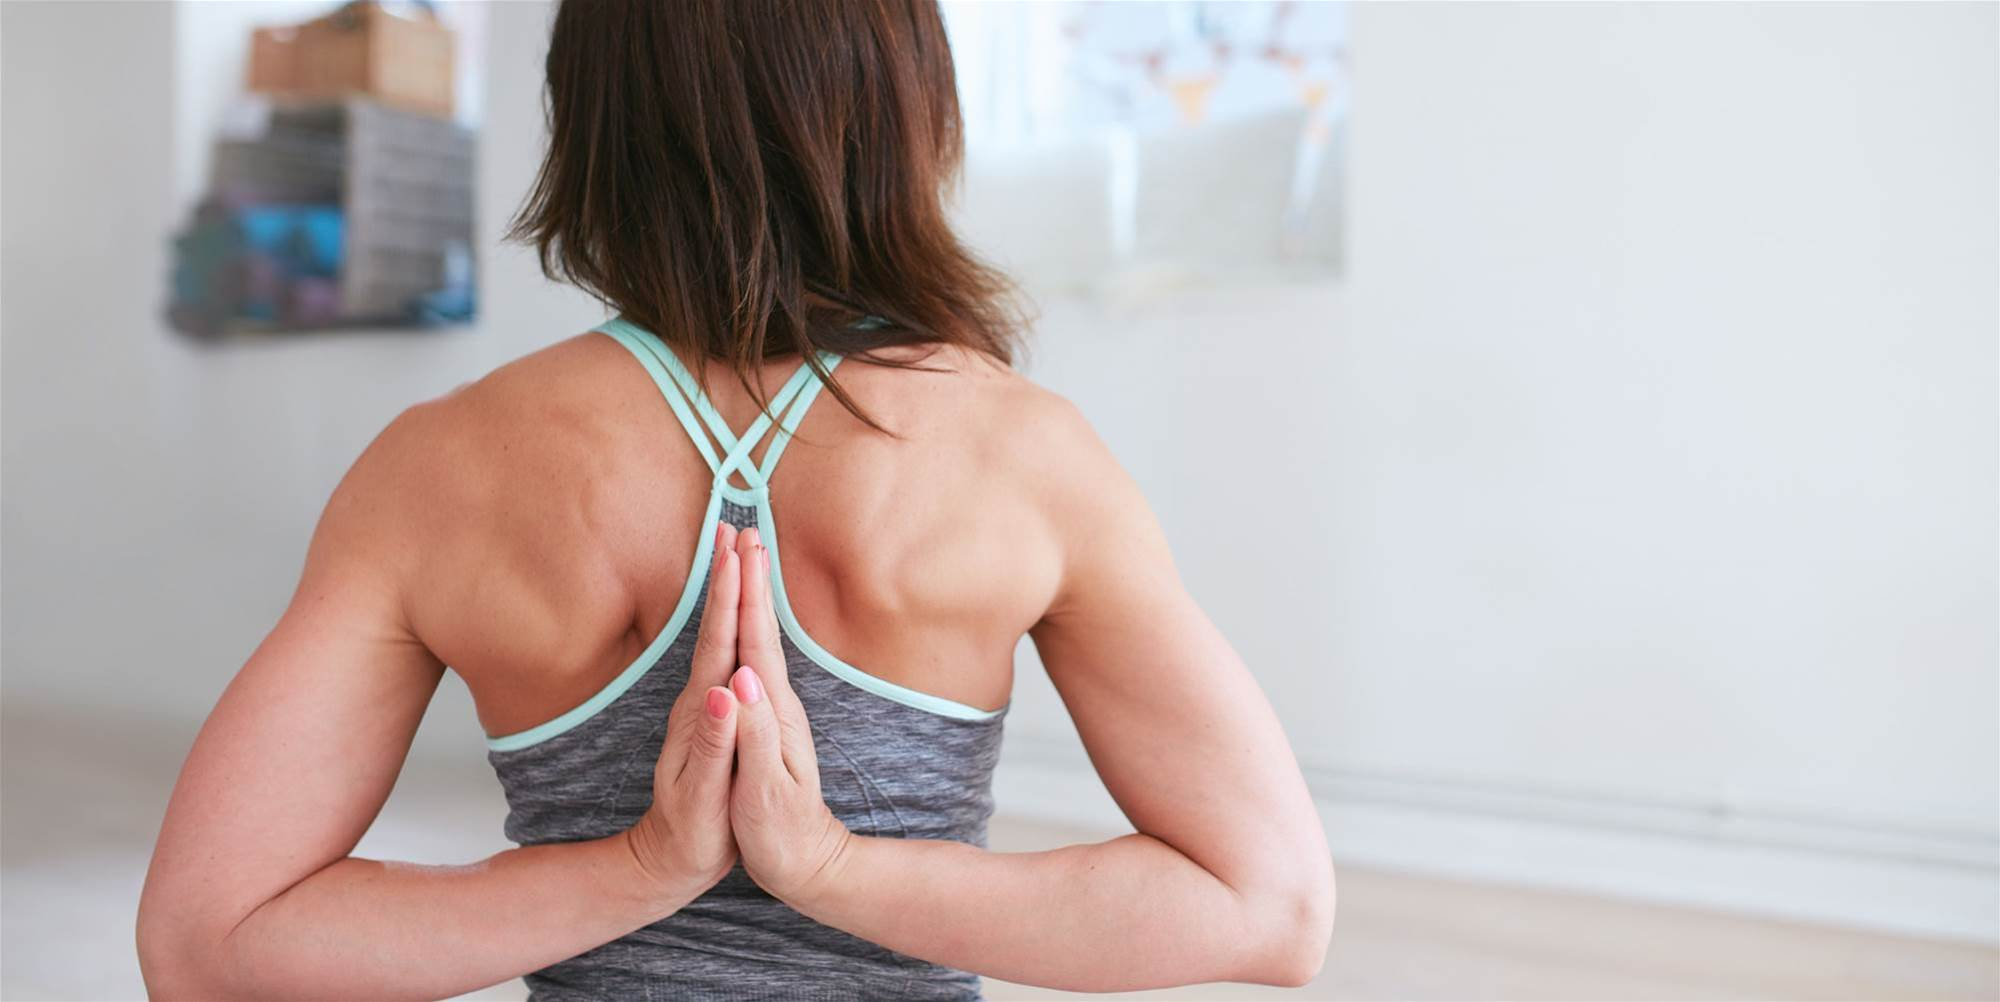 6 Yoga Shoulder Stretches to Un-Hunch Your Back and Relieve Neck Pain